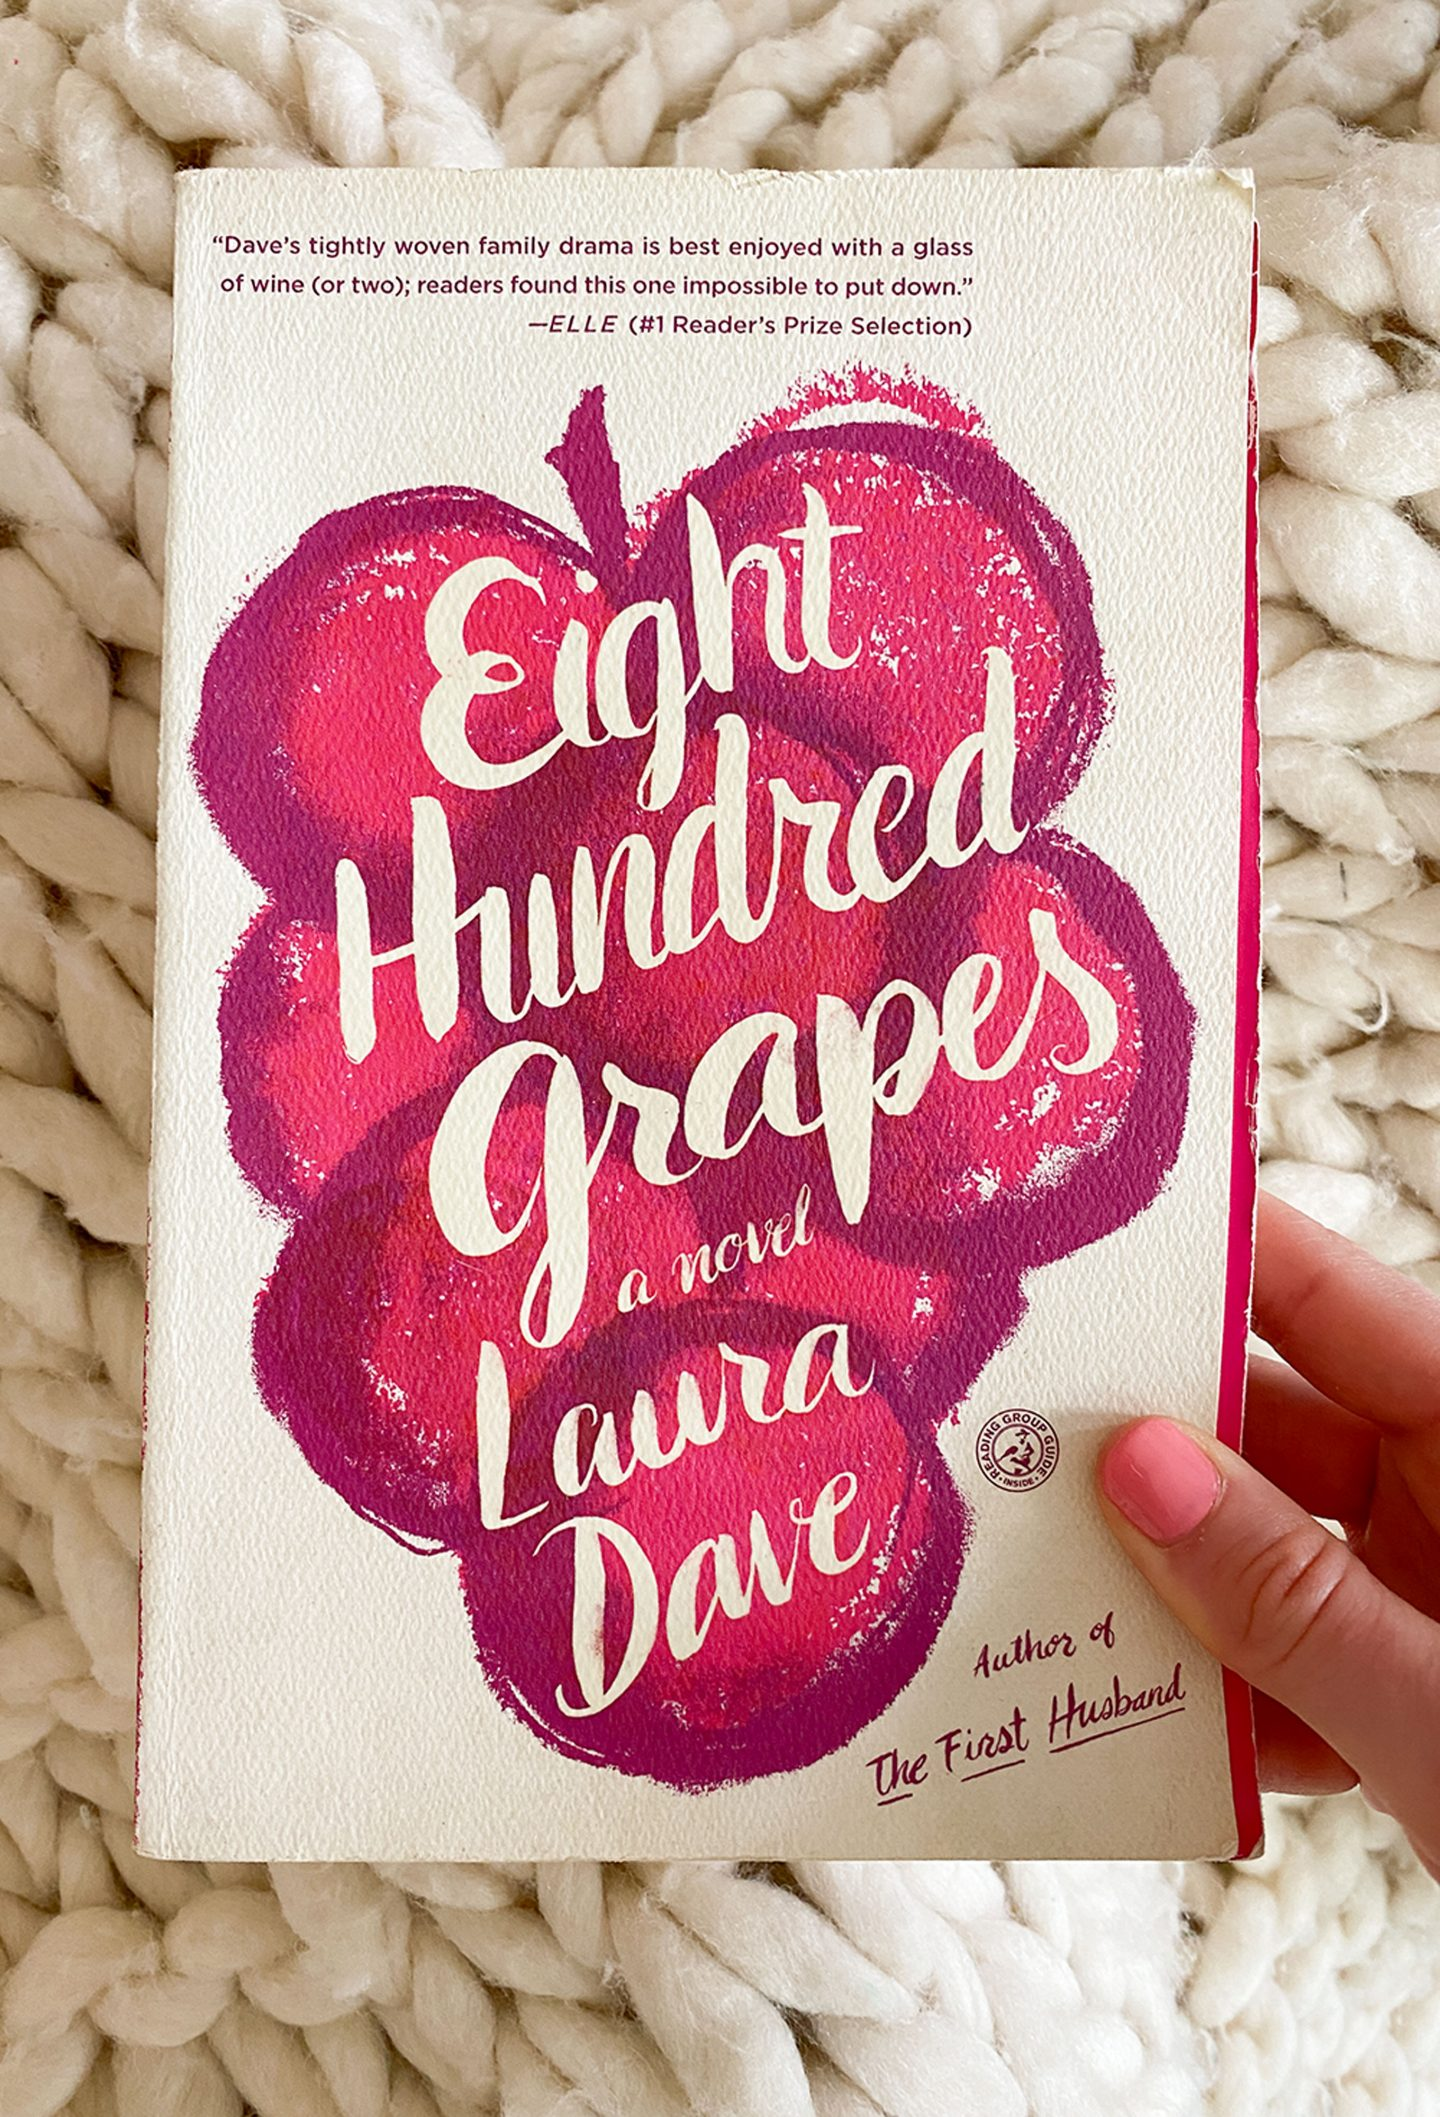 October's Book: Eight Hundred Grapes